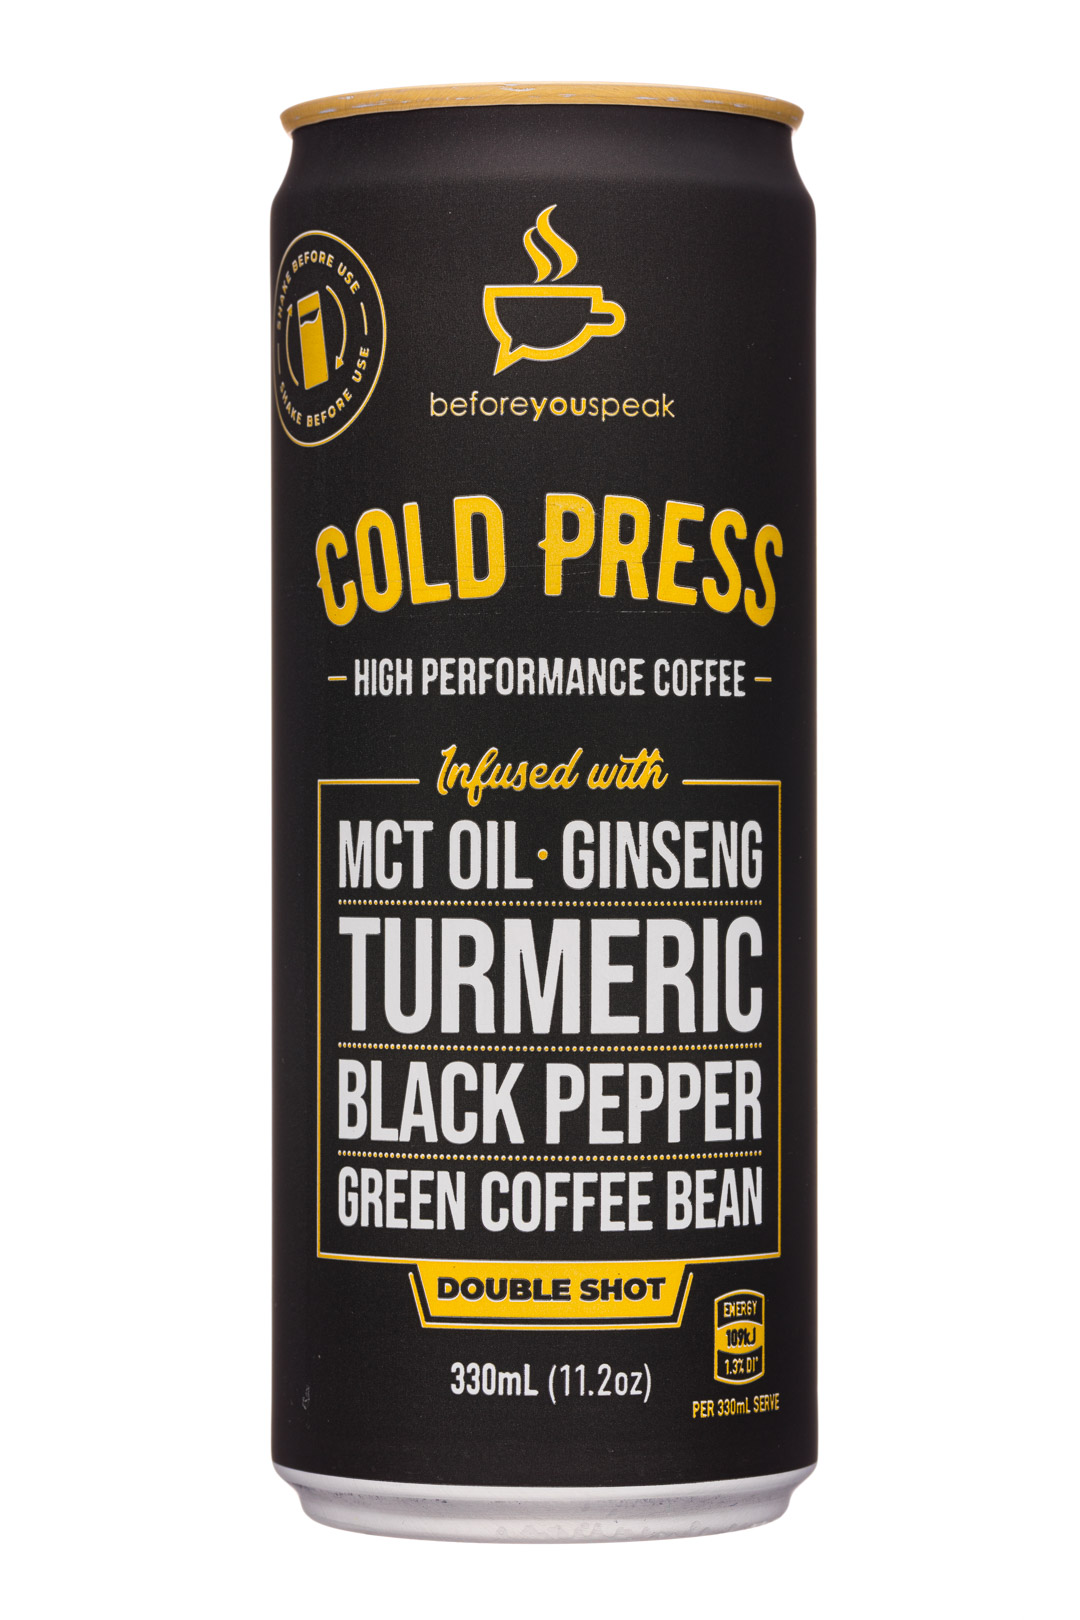 Cold Press High Performance Coffee - Double Shot